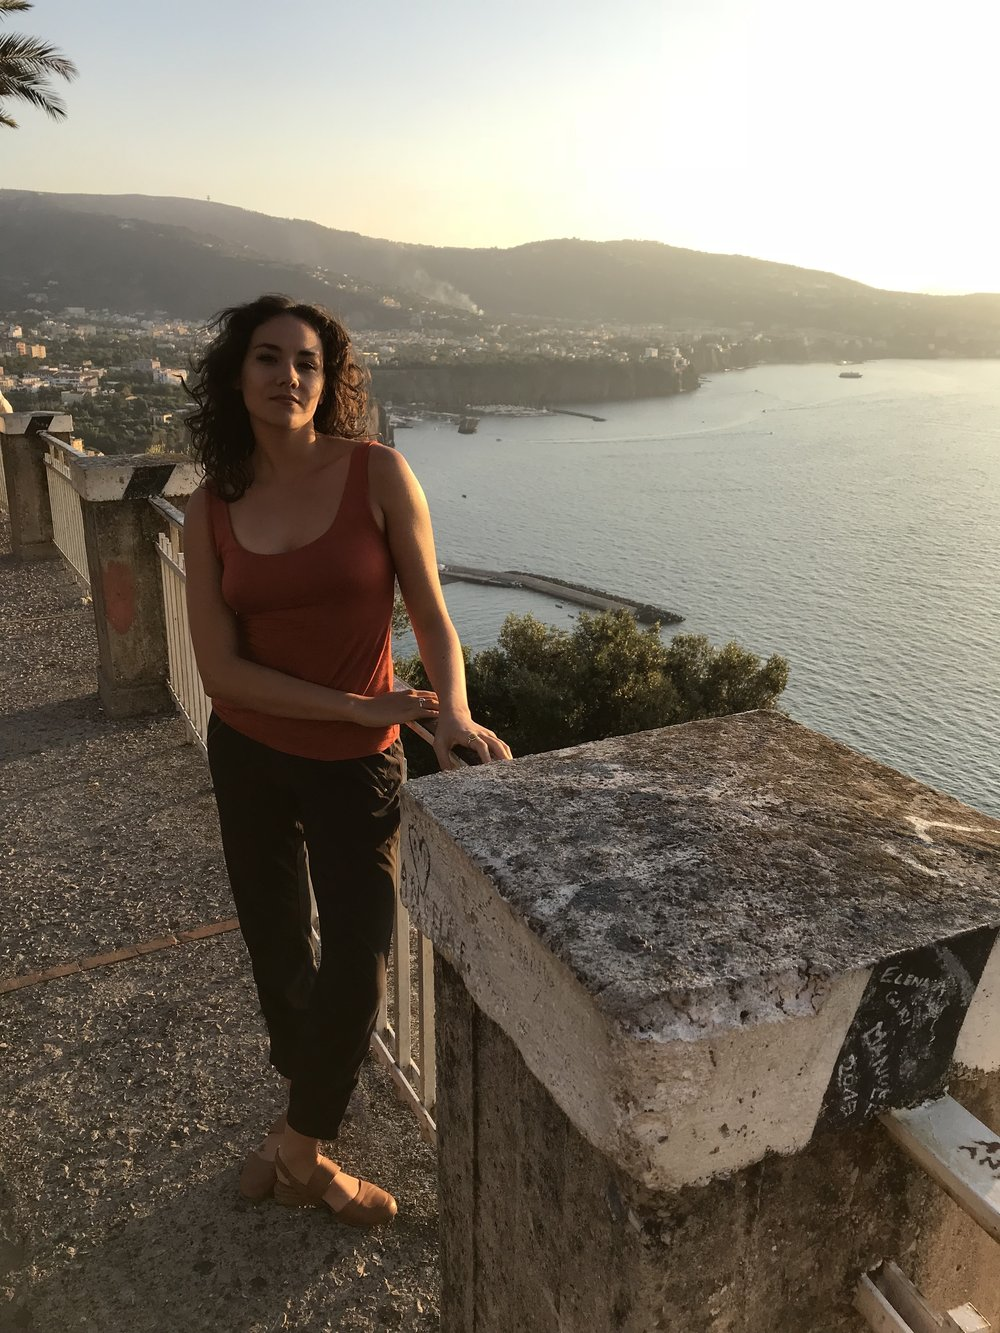 Pitstop on the way to Postiano for this truly beautiful sunset and view. -